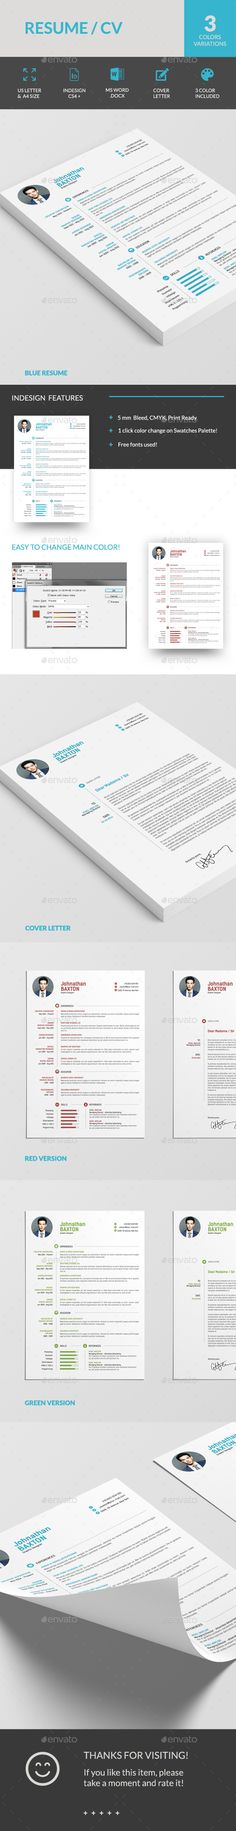 Resume CV by sabin_vp Resume CVThis minimal CV Resume set helps you to present yourself in the smartest way. Take it and create a strong impression abou